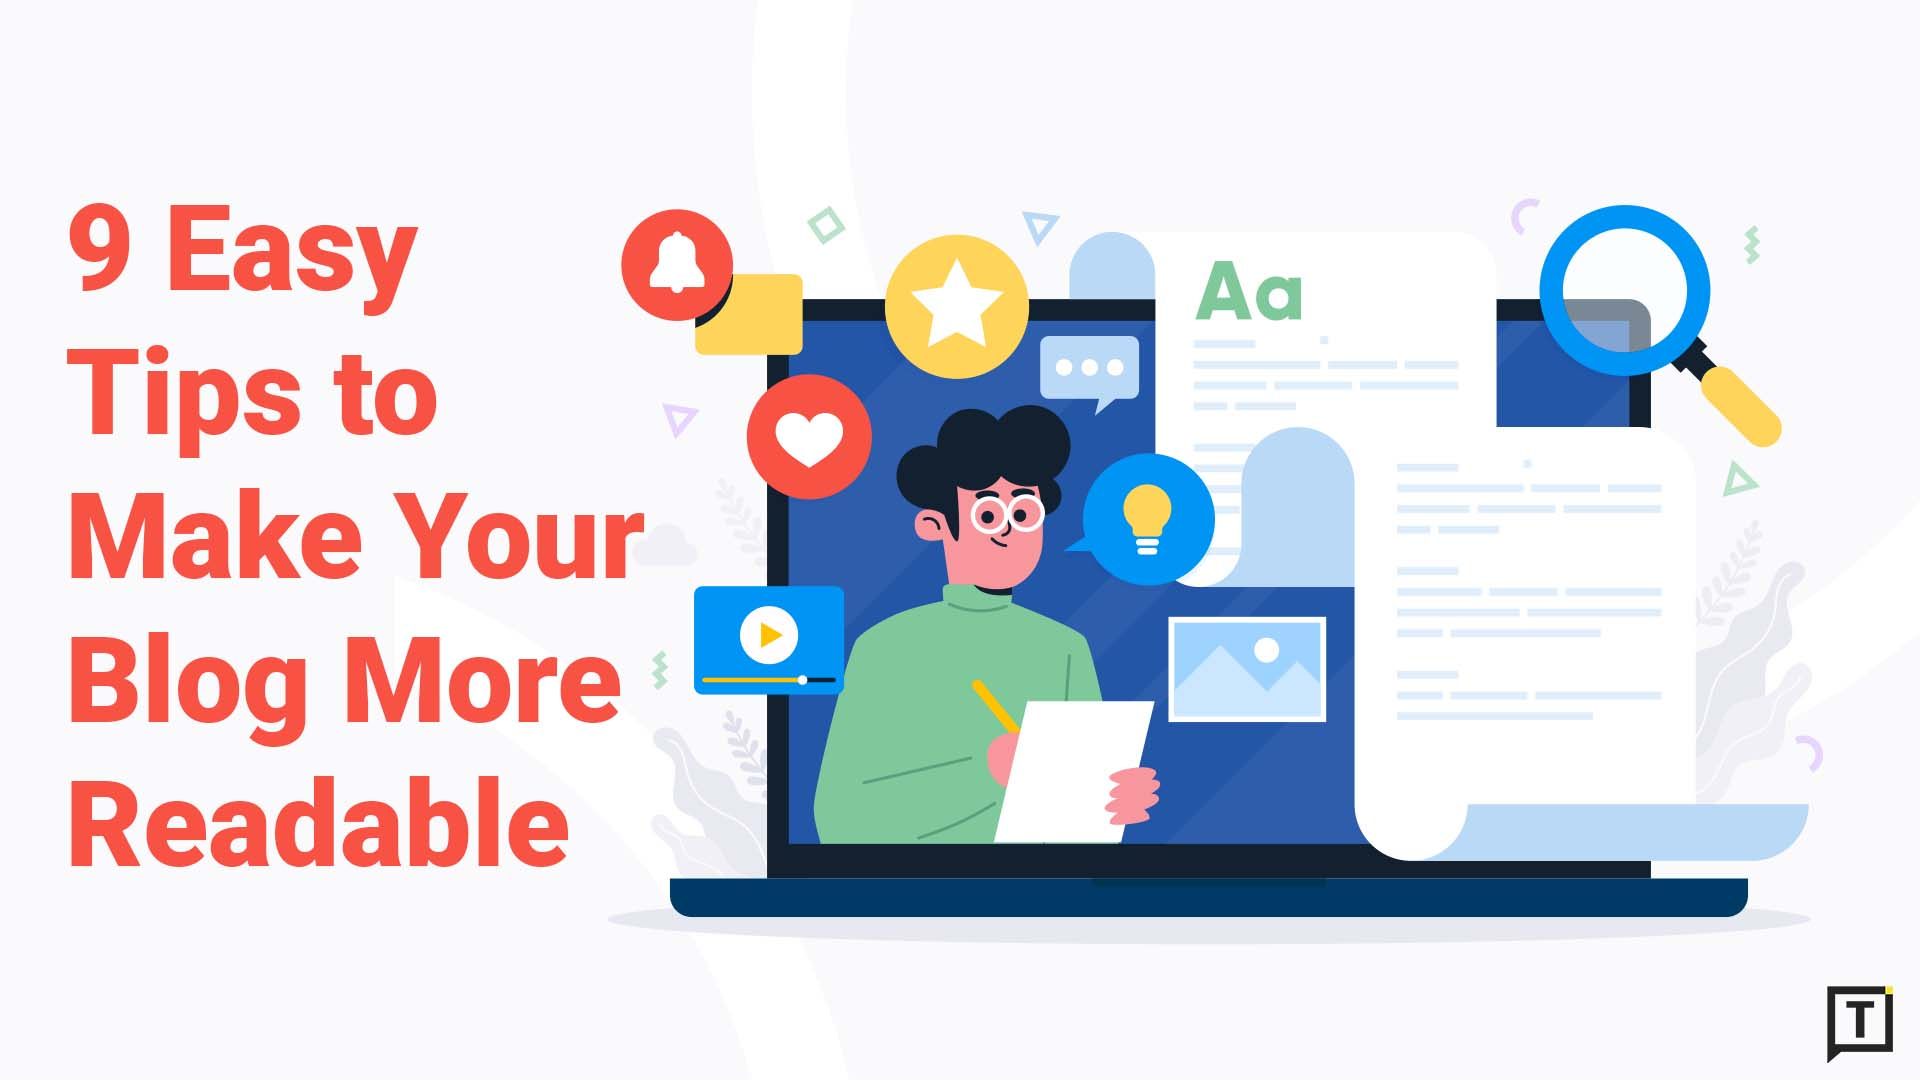 9 Easy Tips to Make Your Blog More Readable cover image